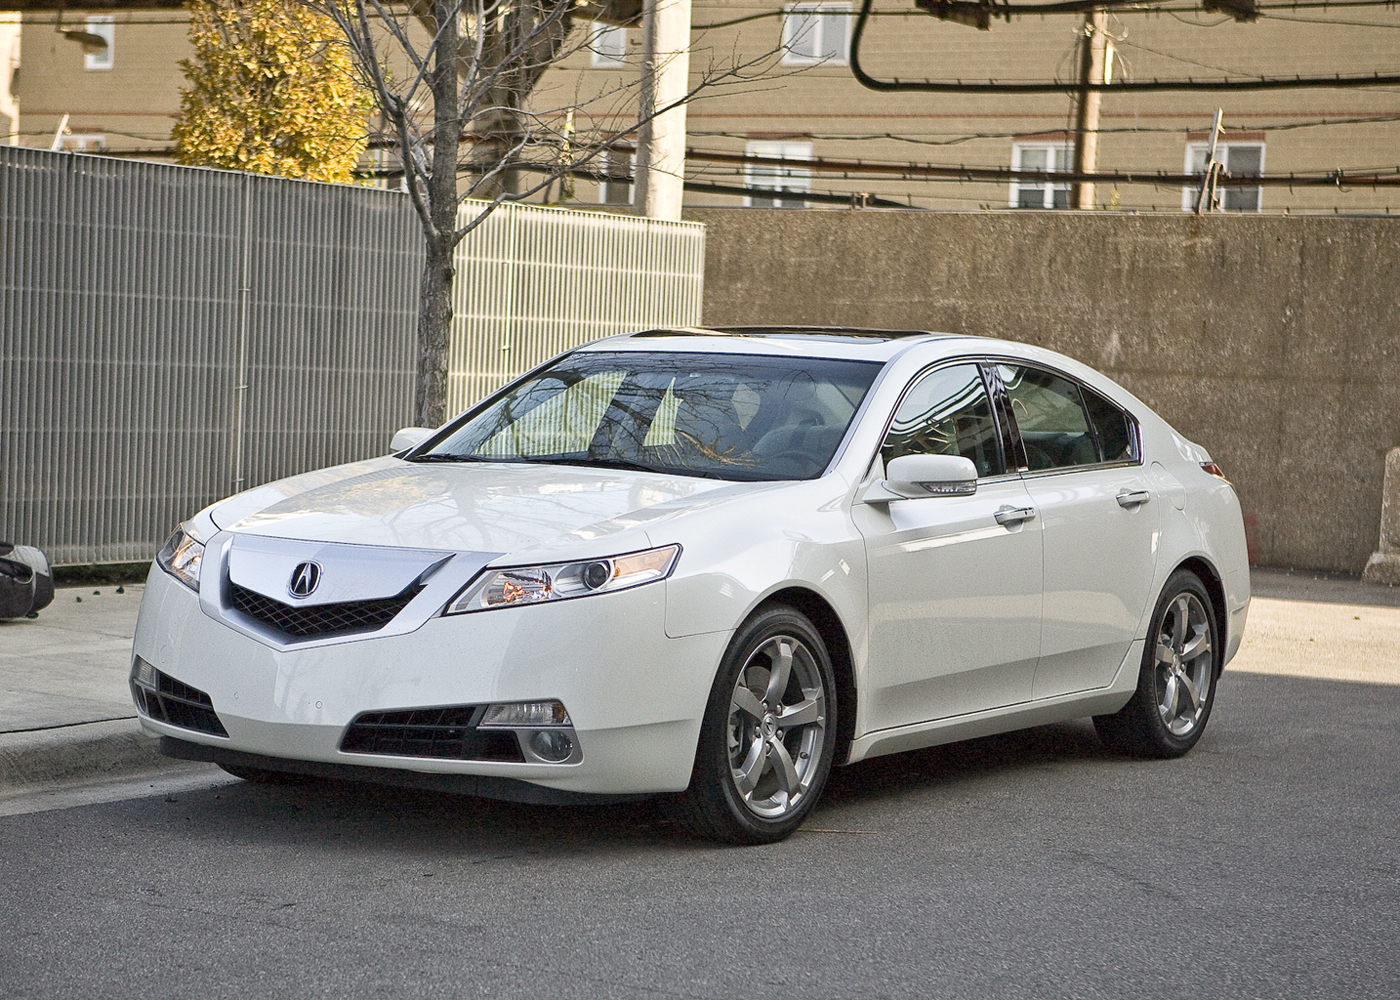 2010 acura tl expert and consumer reviews on. Black Bedroom Furniture Sets. Home Design Ideas